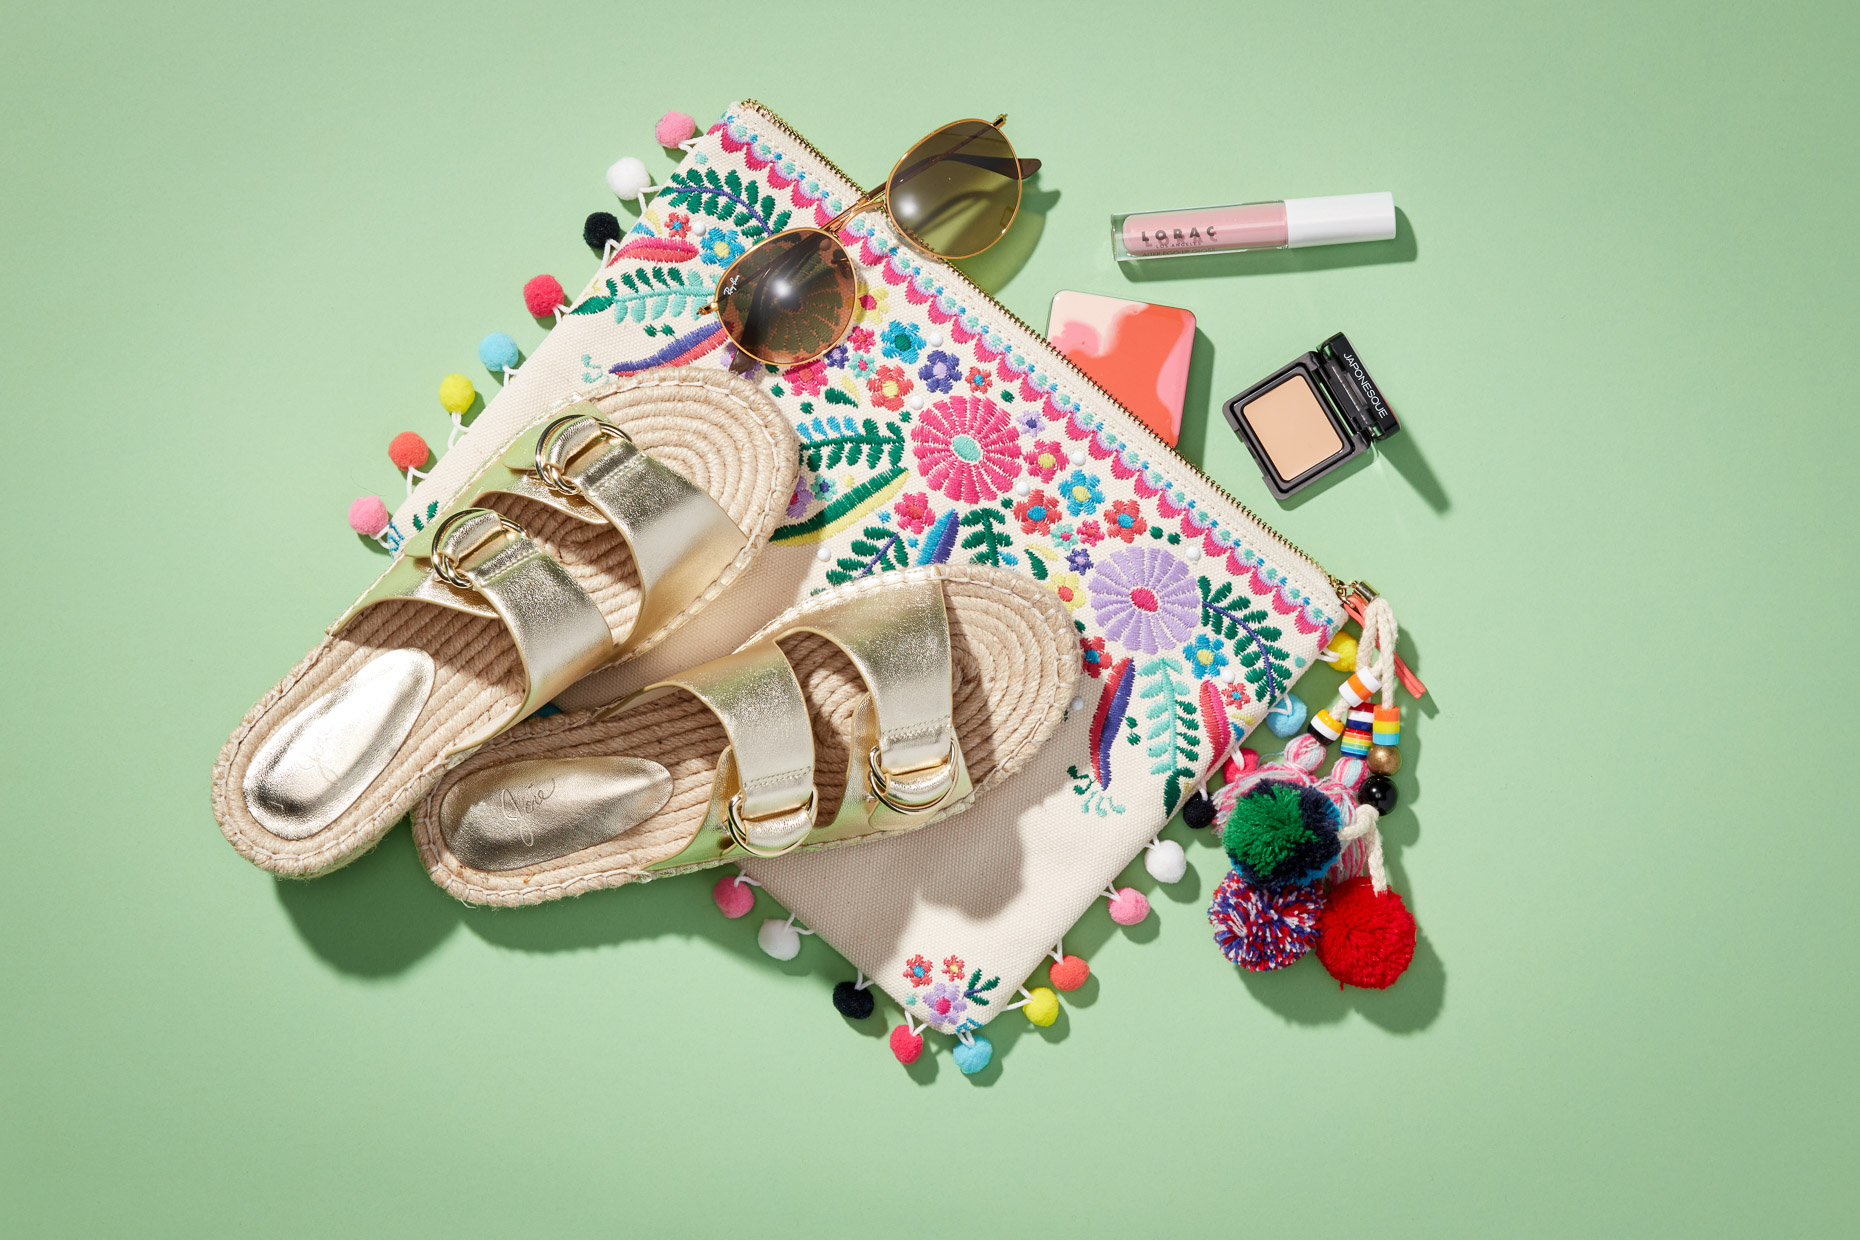 Bag_Sandals_Makeup_Sunglasses_Gold_Multi_POMPOM